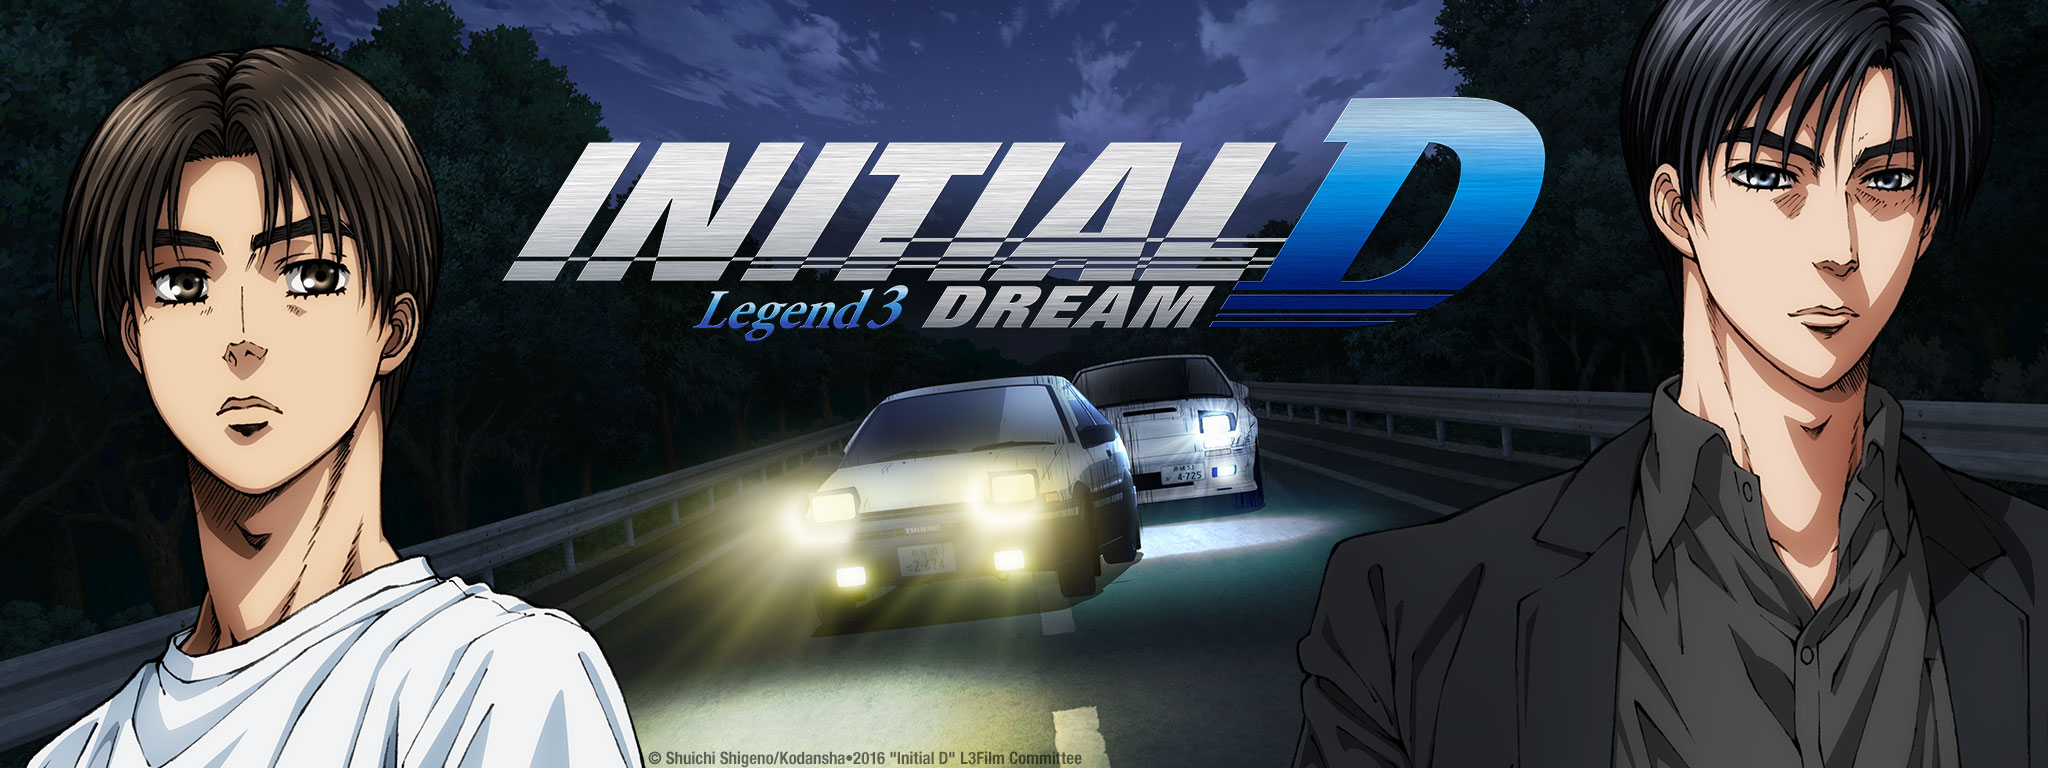 New Theatrical Movie Initial D Legend 3: Dream